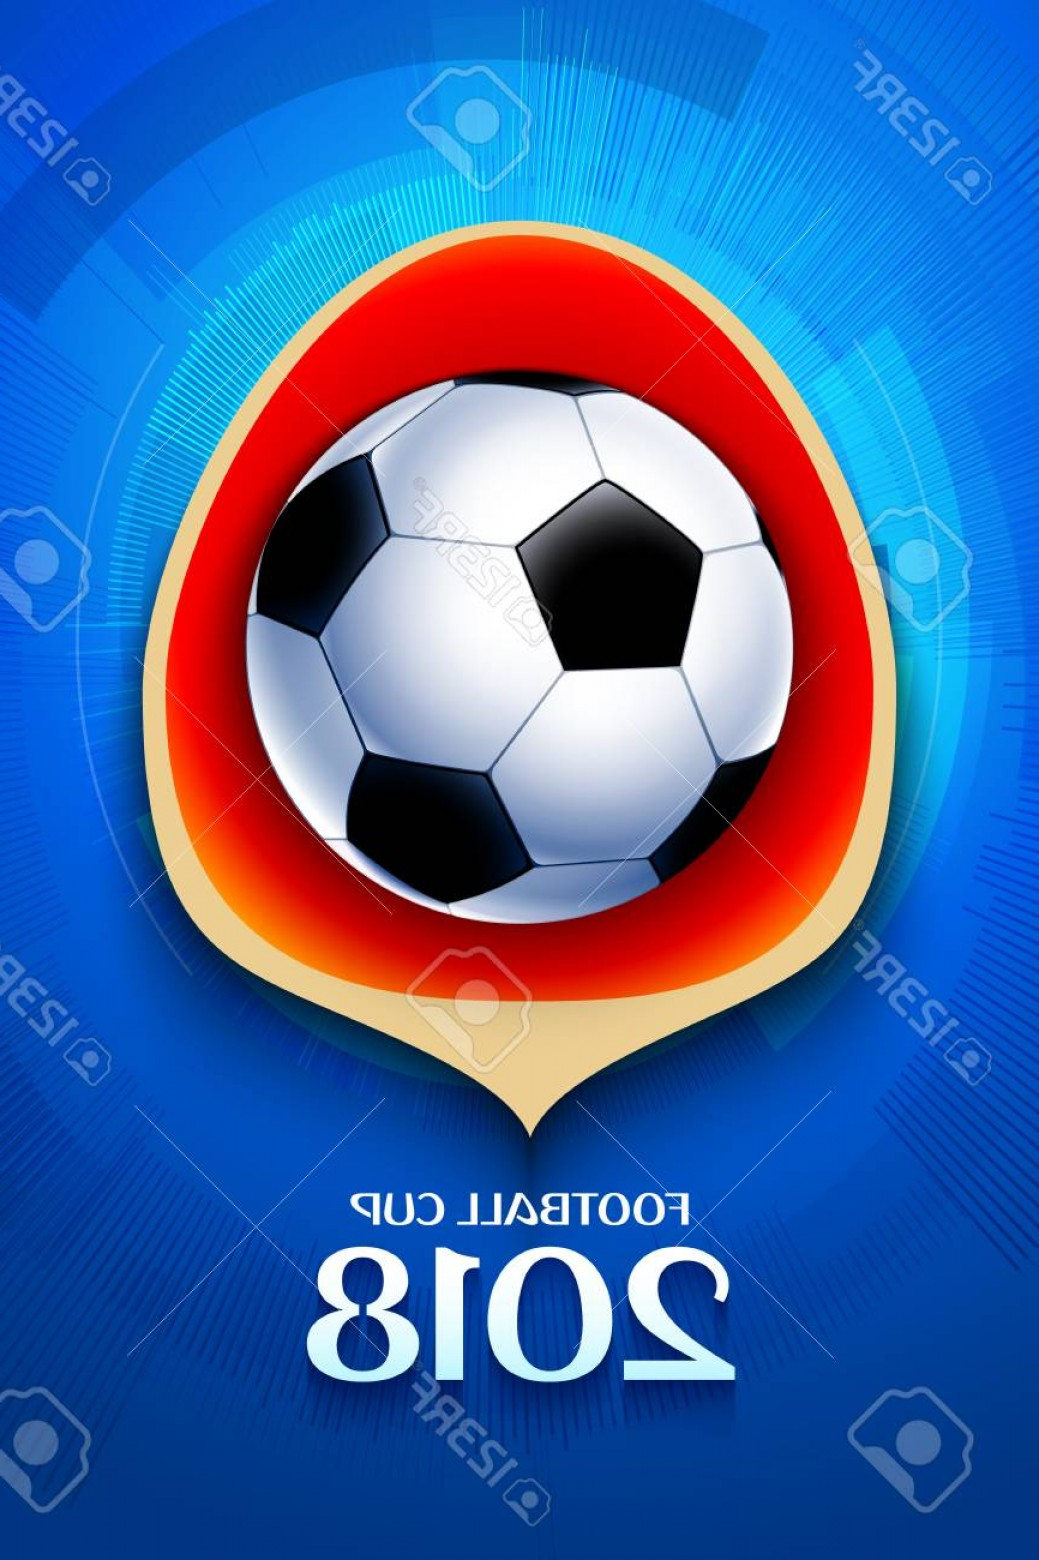 Football Vector Wallpaper: Photostock Vector Football Wallpaper Soccer Cup Color Pattern With Modern And Traditional Elements World Championship